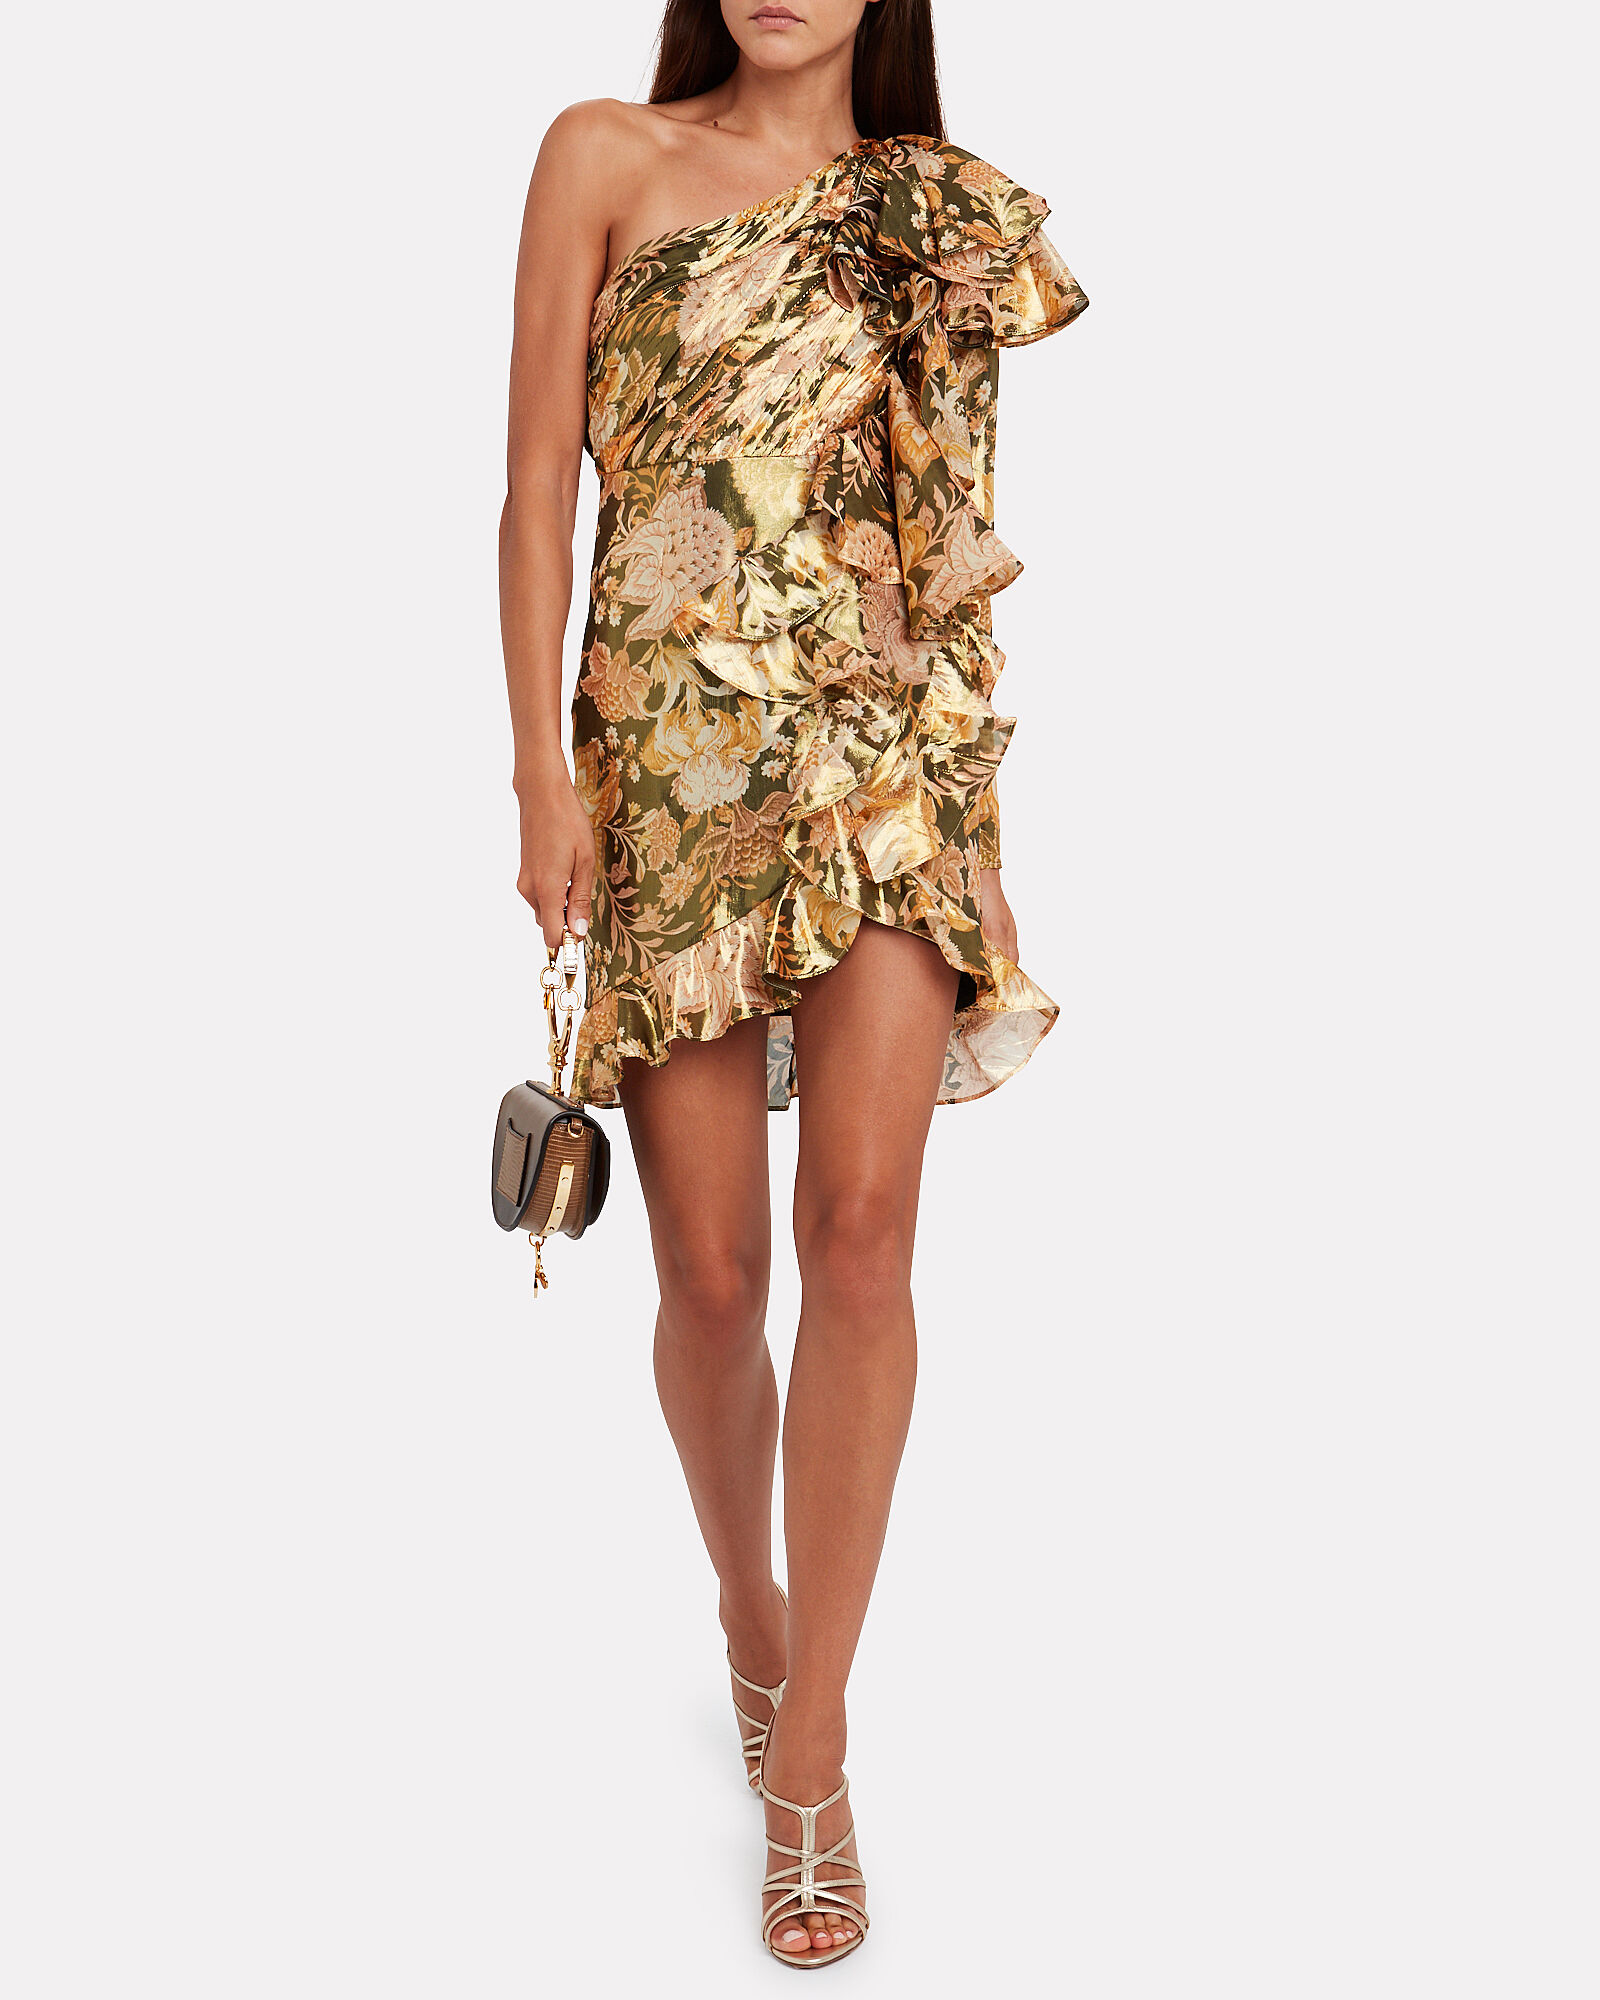 Chateau Ruffled Floral Dress, GOLD/FLORAL, hi-res